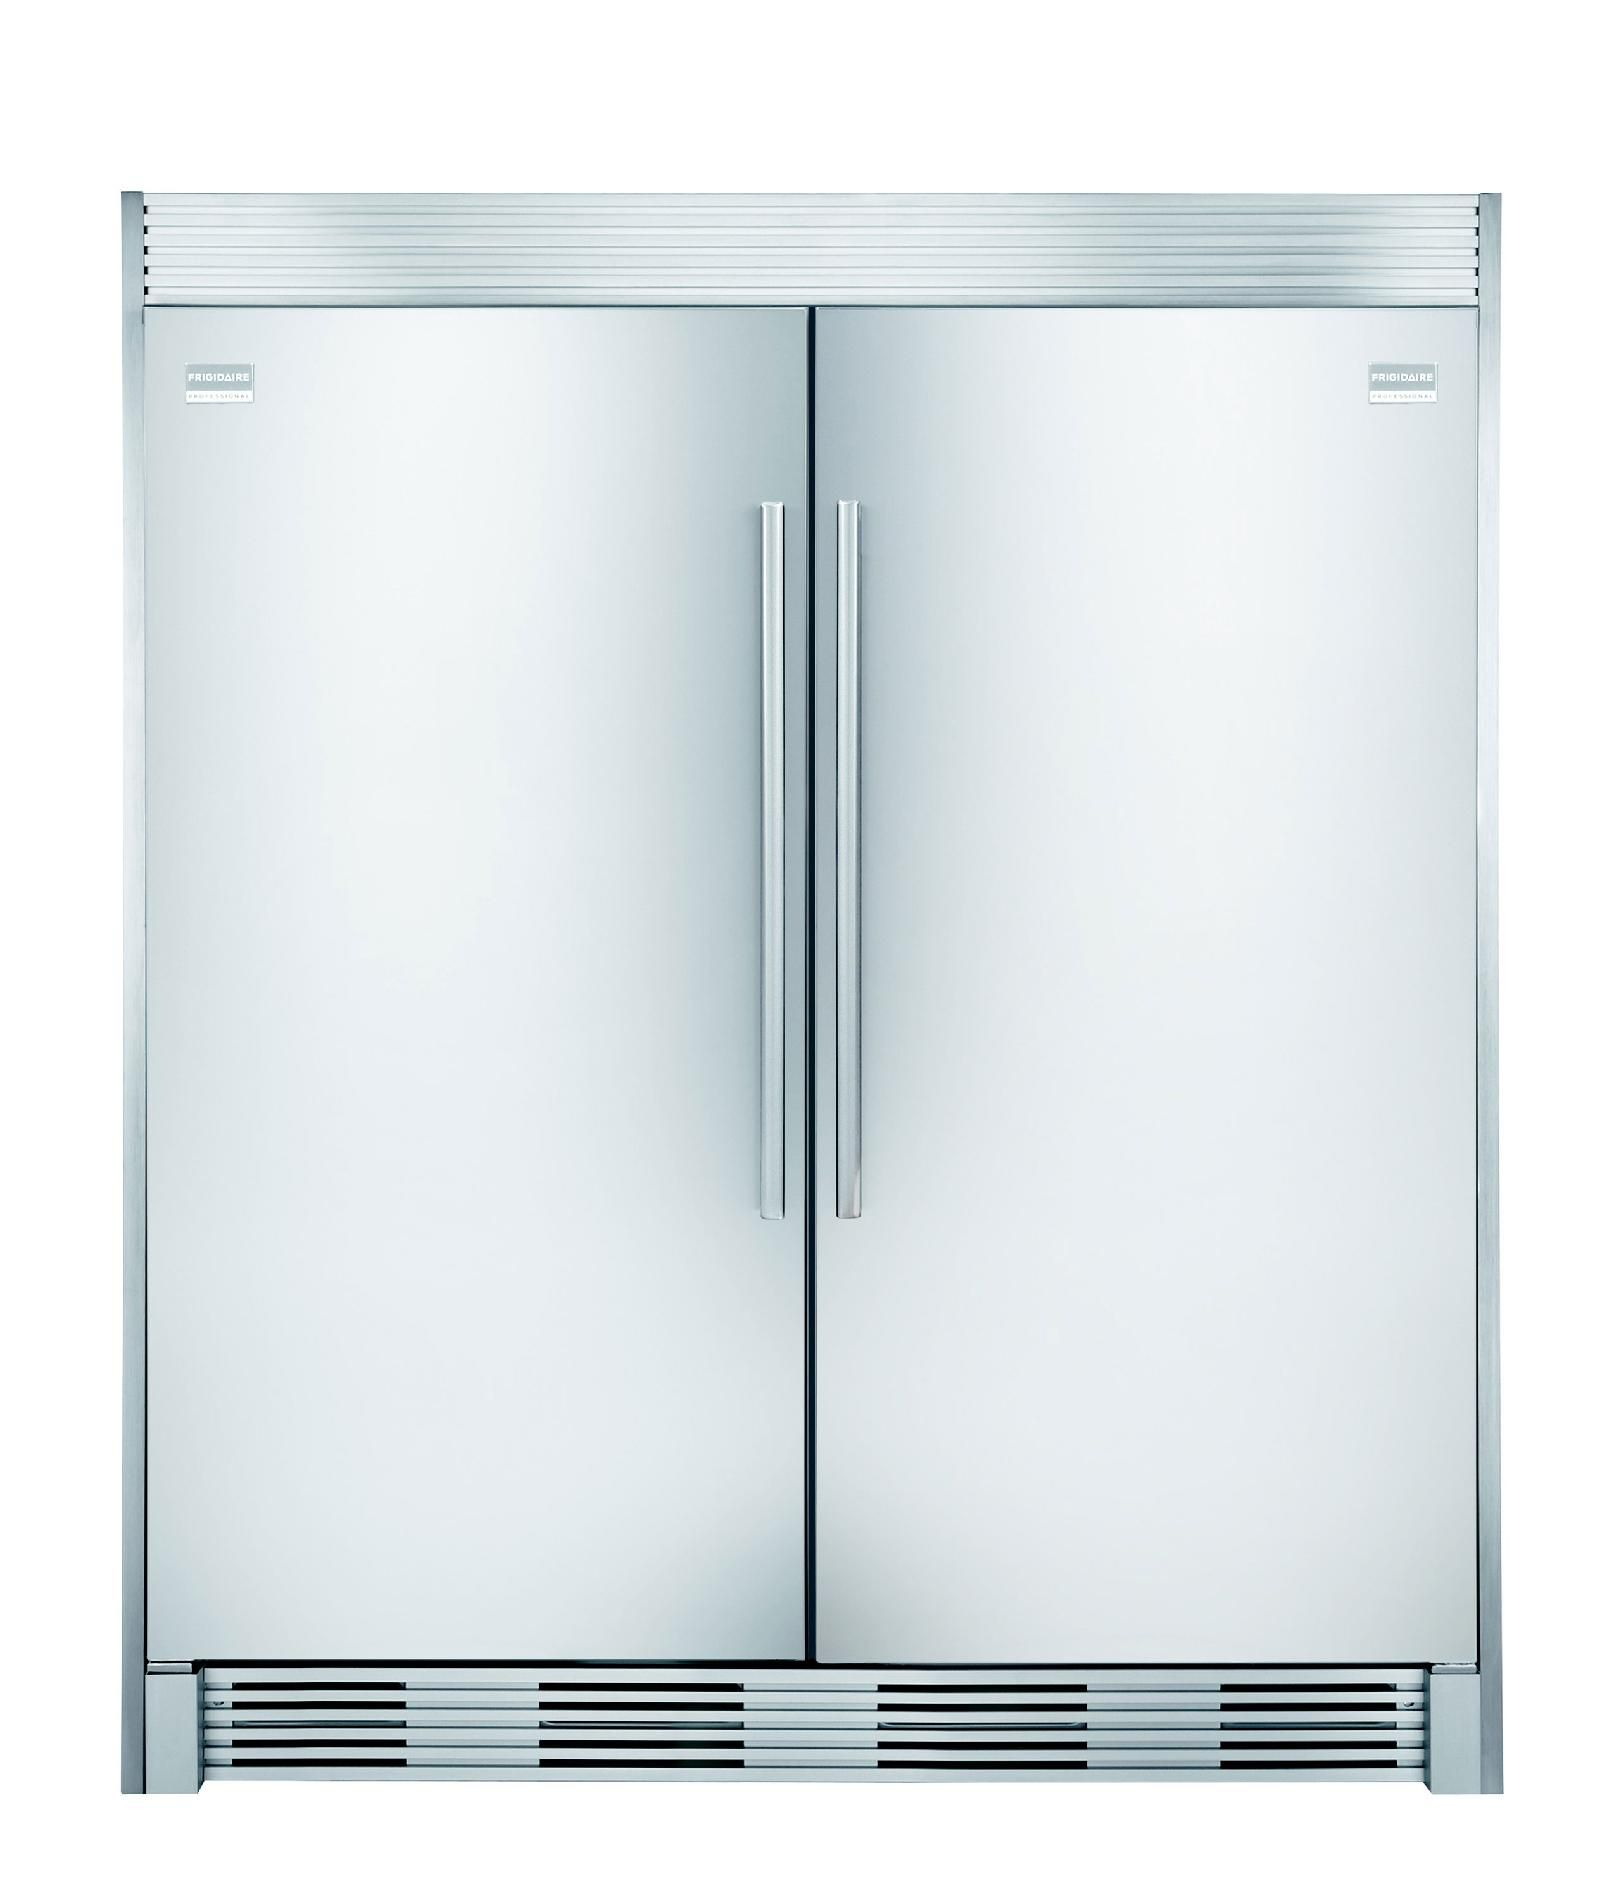 Frigidaire 19.0 cu. ft. Freezerless Refrigerator, Stainless Steel